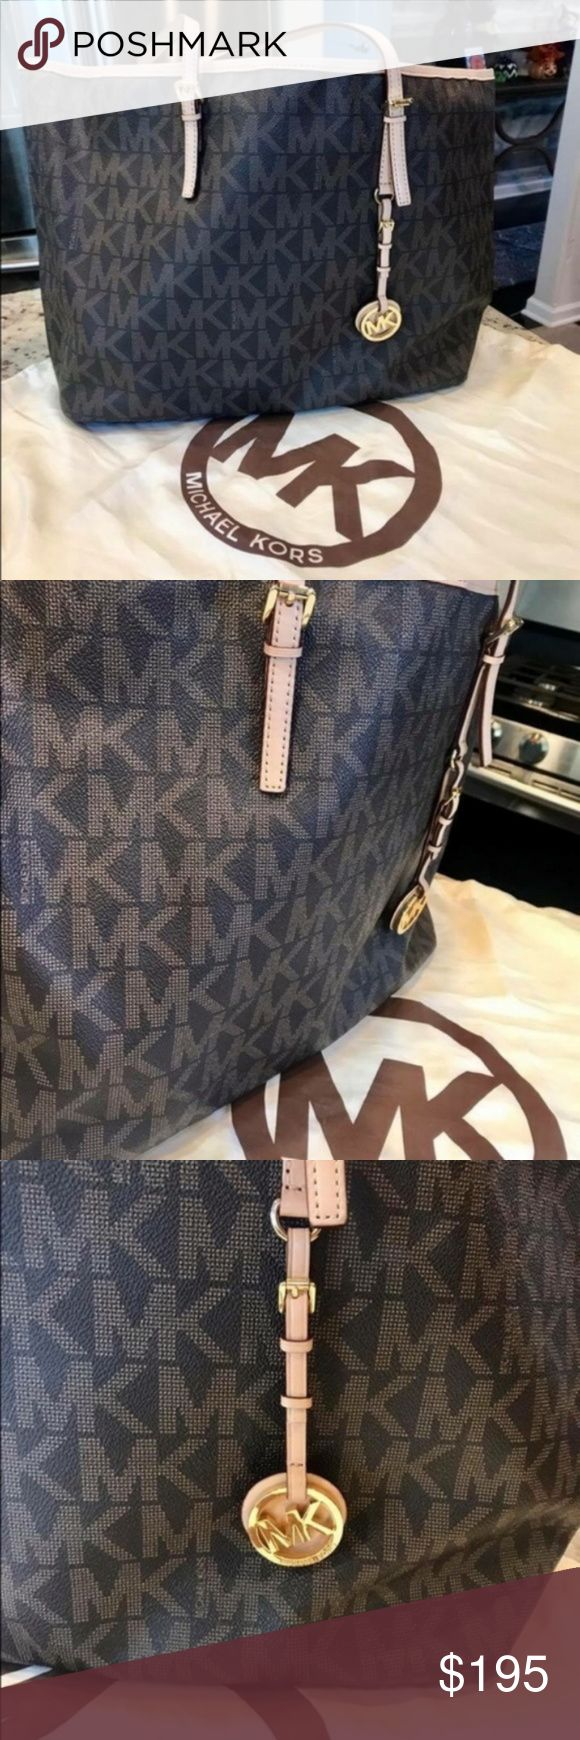 NWT Michael Kors Jet Set Signature Large Tote NWT Michael Kors Jet Set Signature Large Tote. New with tags! Brown color, creme colored straps, gold hardware; MK logo present; open to offers! doesn't come with the dust bag; Michael Kors Bags